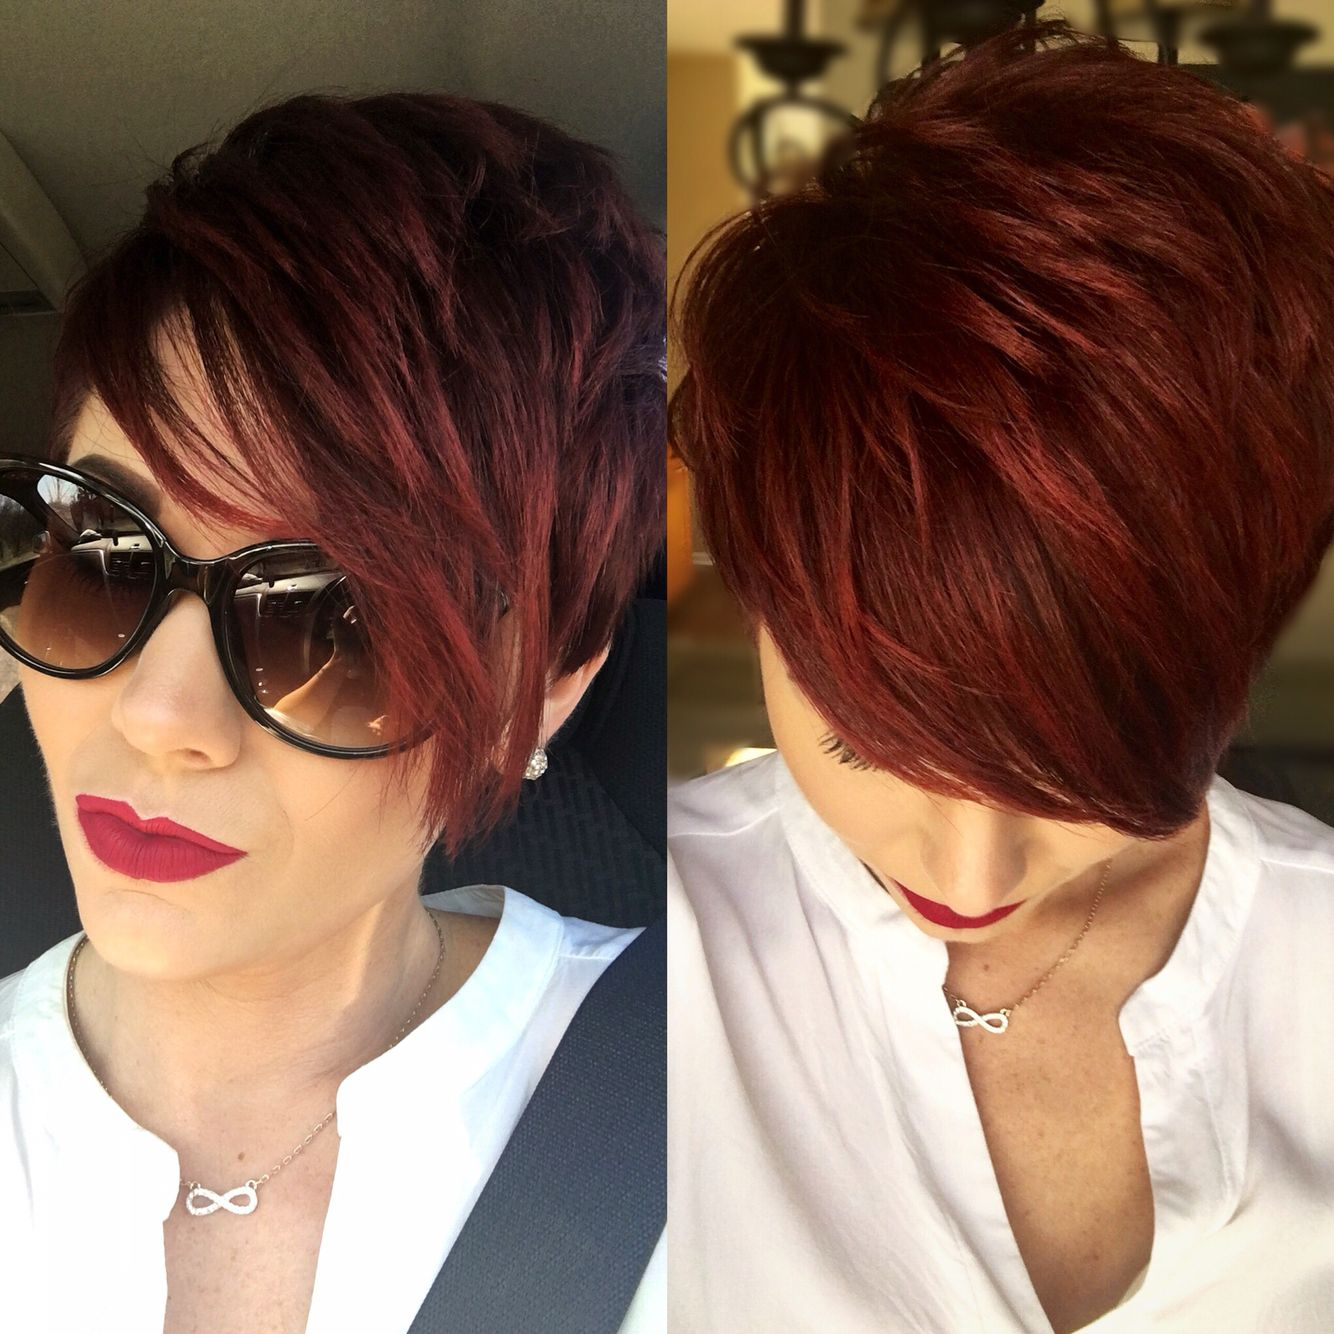 Red violet pixie cut                                                                                                                                                      More